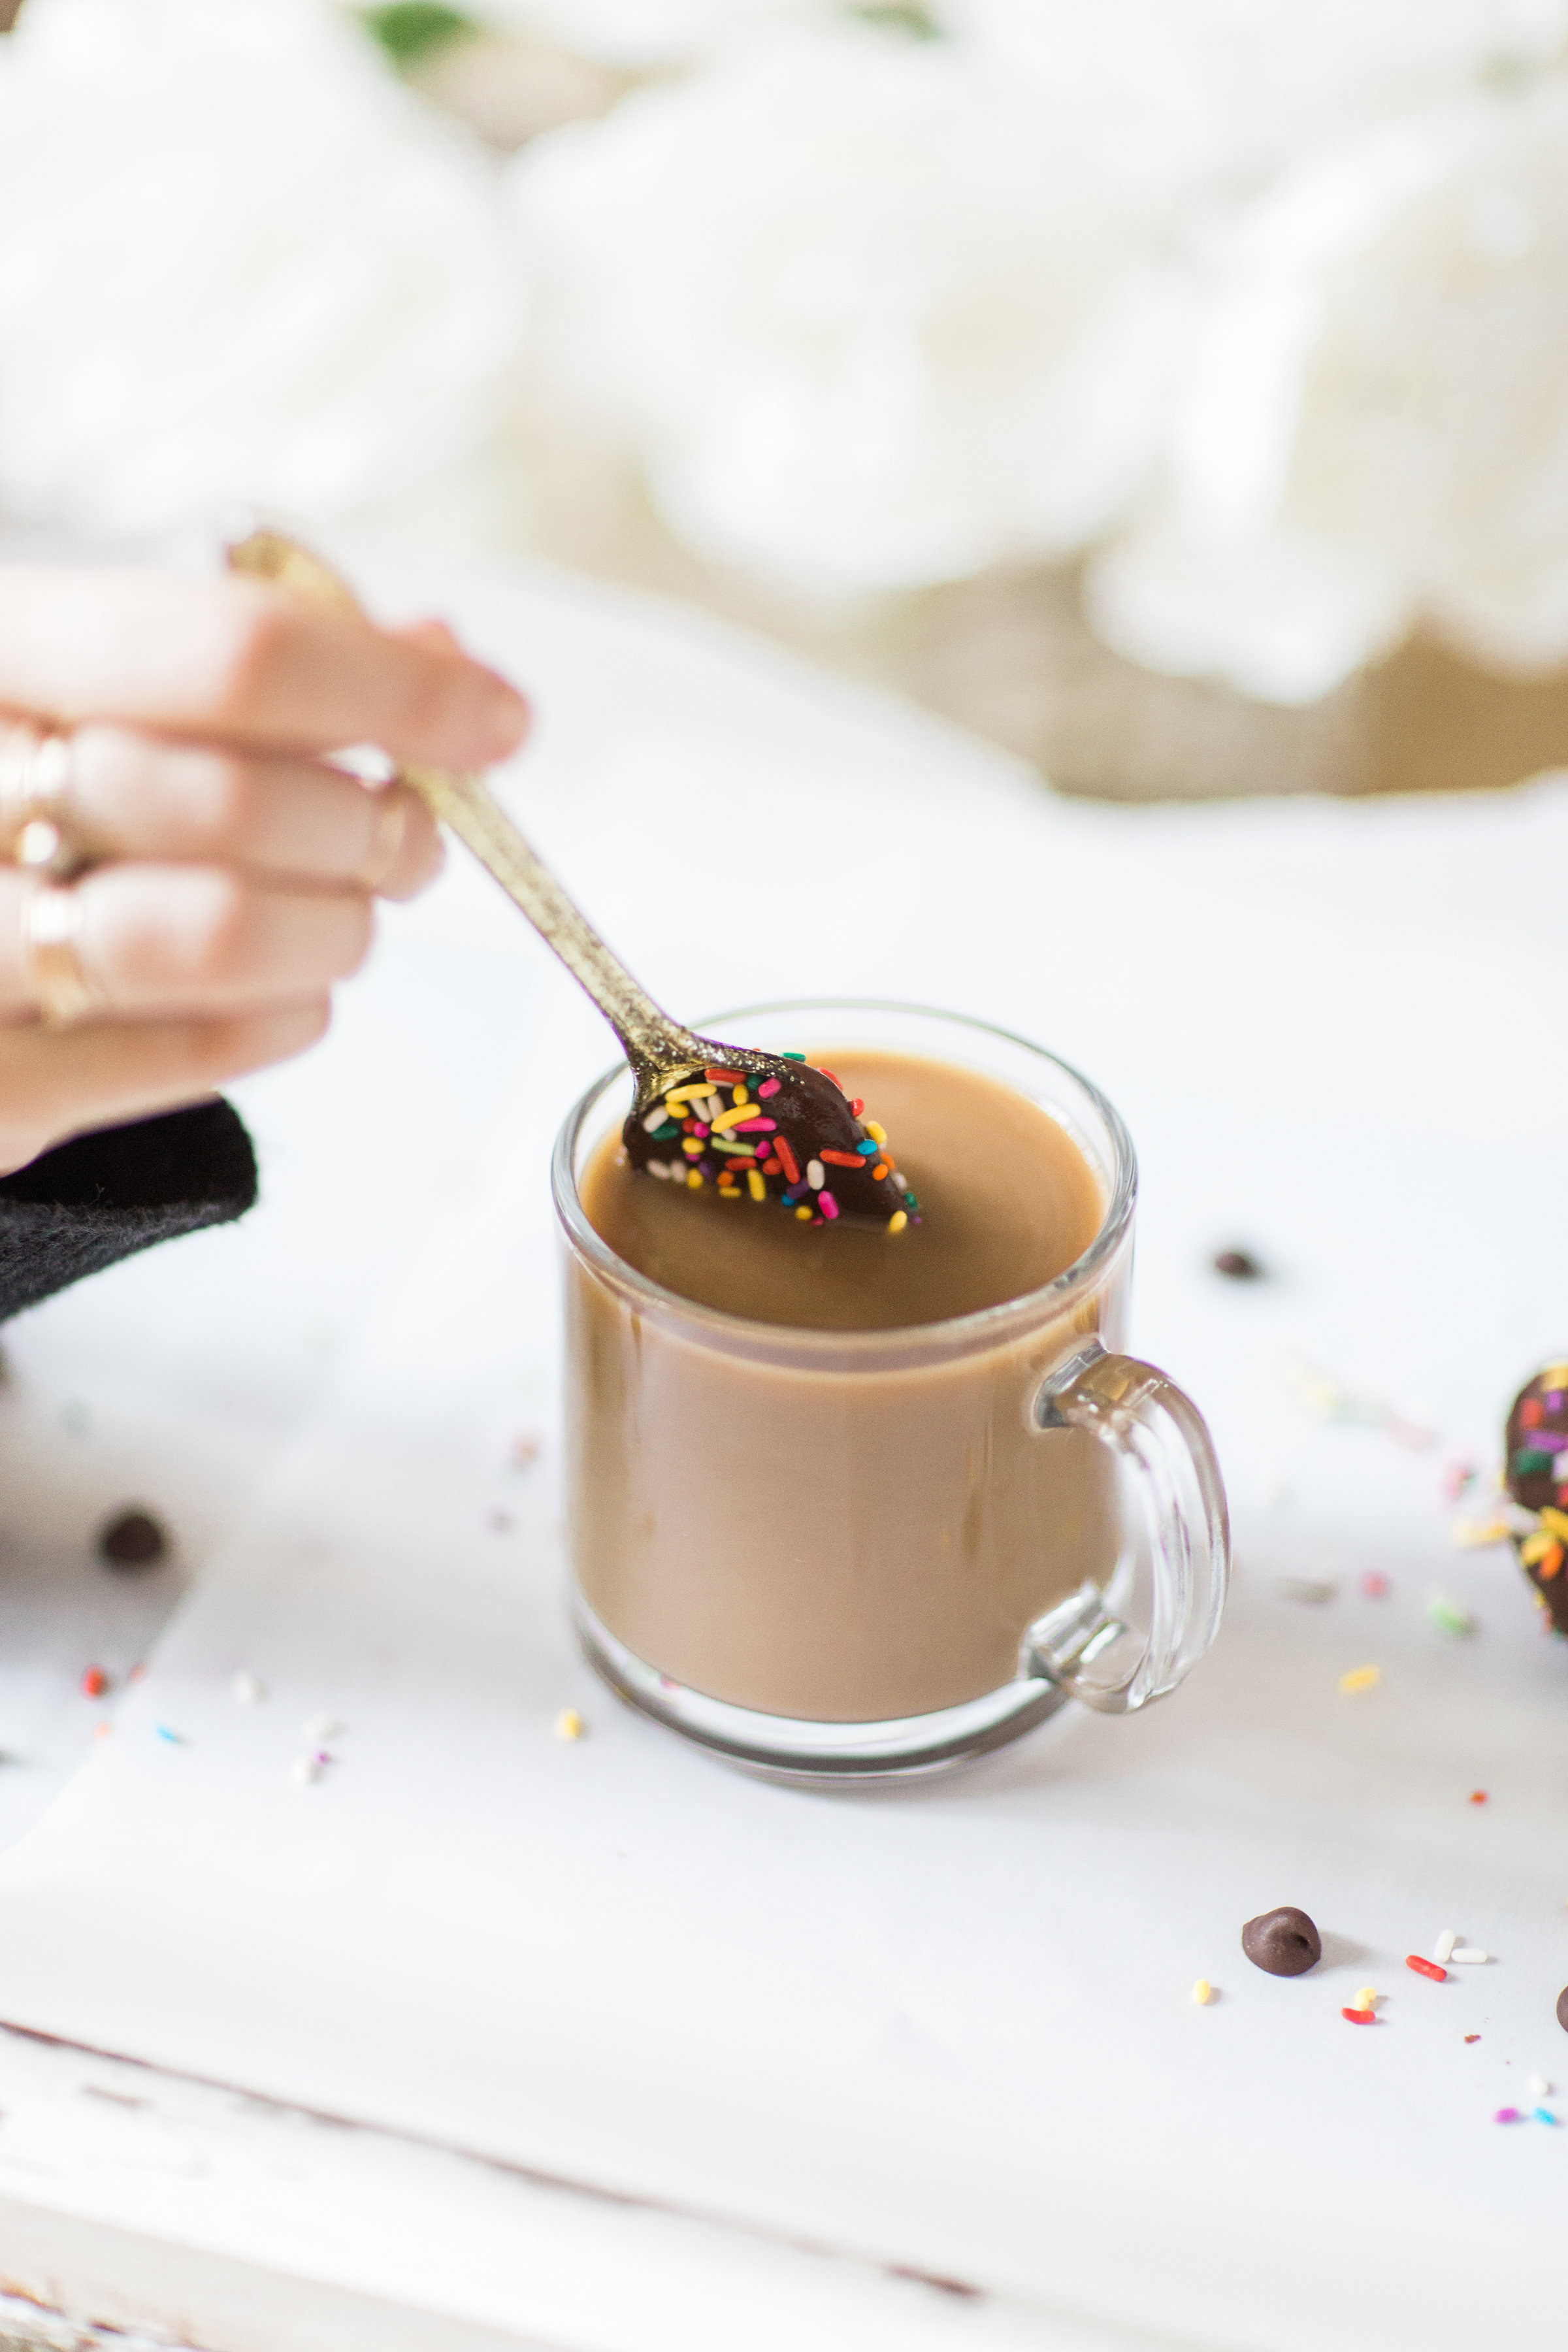 How to make an almond milk chocolate glazed donut coffee with chocolate-dipped sprinkle spoons. Click through for the details. | glitterinc.com | @glitterinc